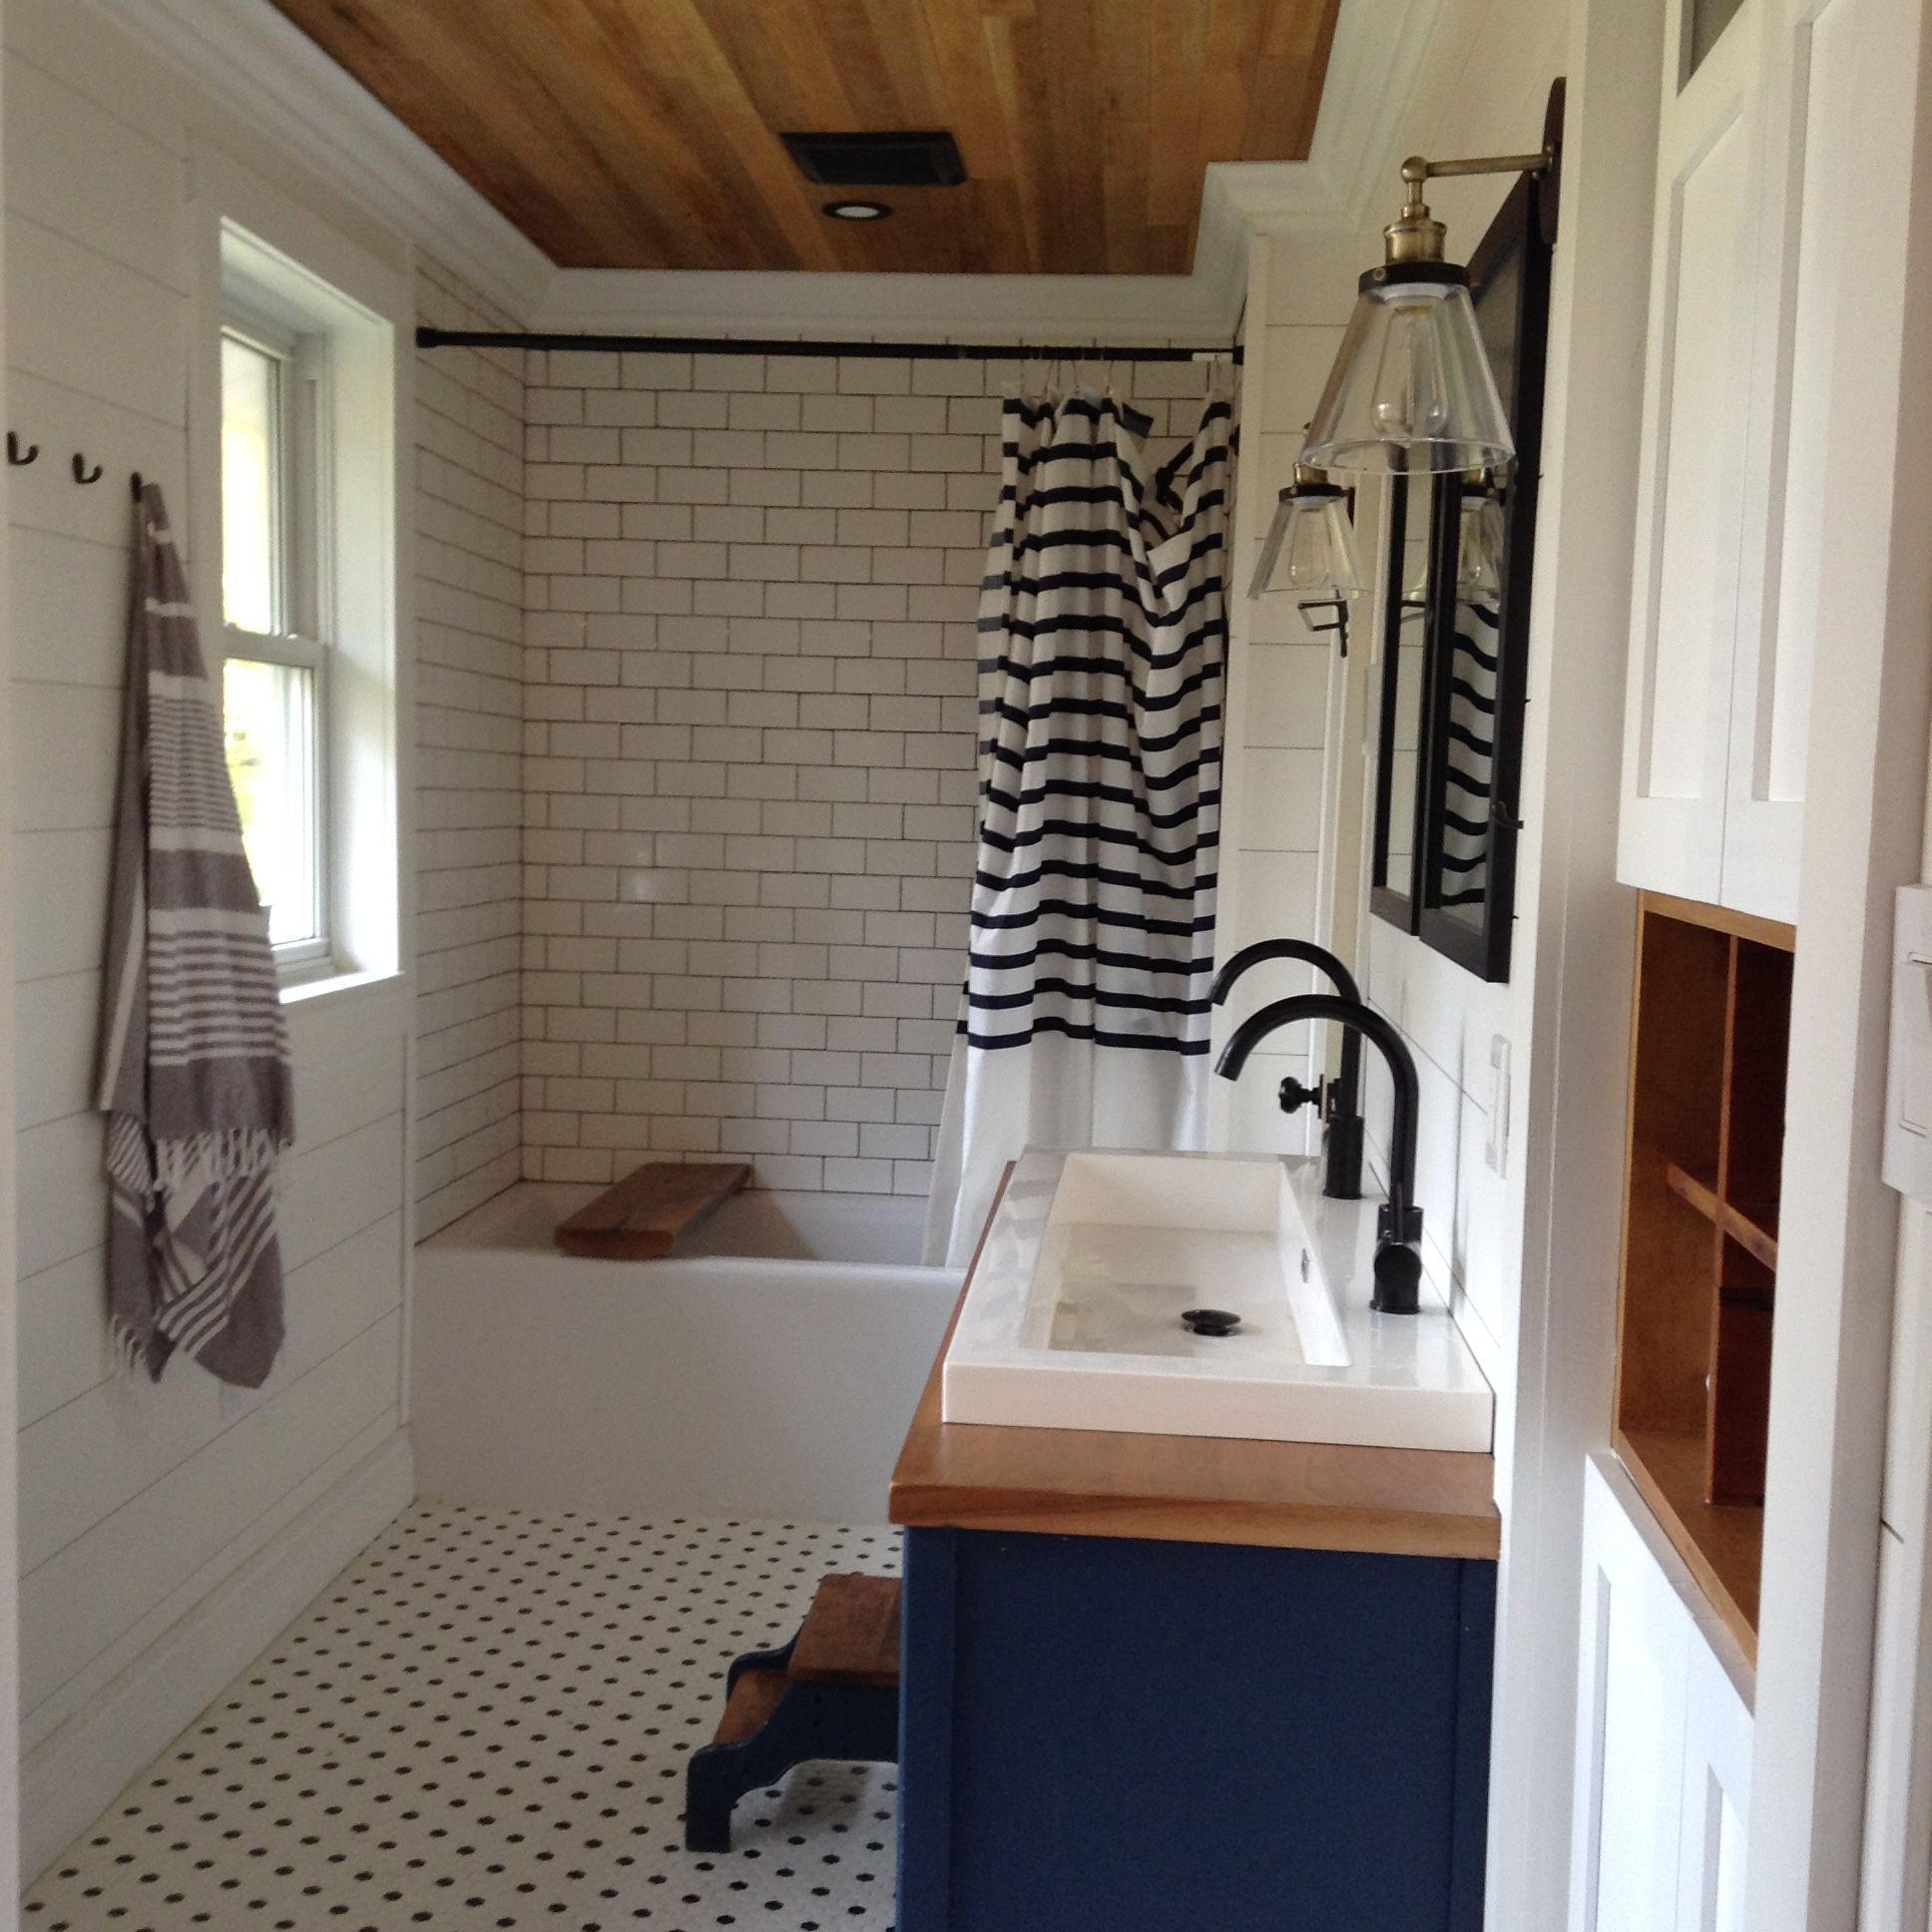 Cedar Ceiling White Shiplap Open Double Sink Black Fixtures Basement Bathroom Design Lake House Bathroom White Shiplap